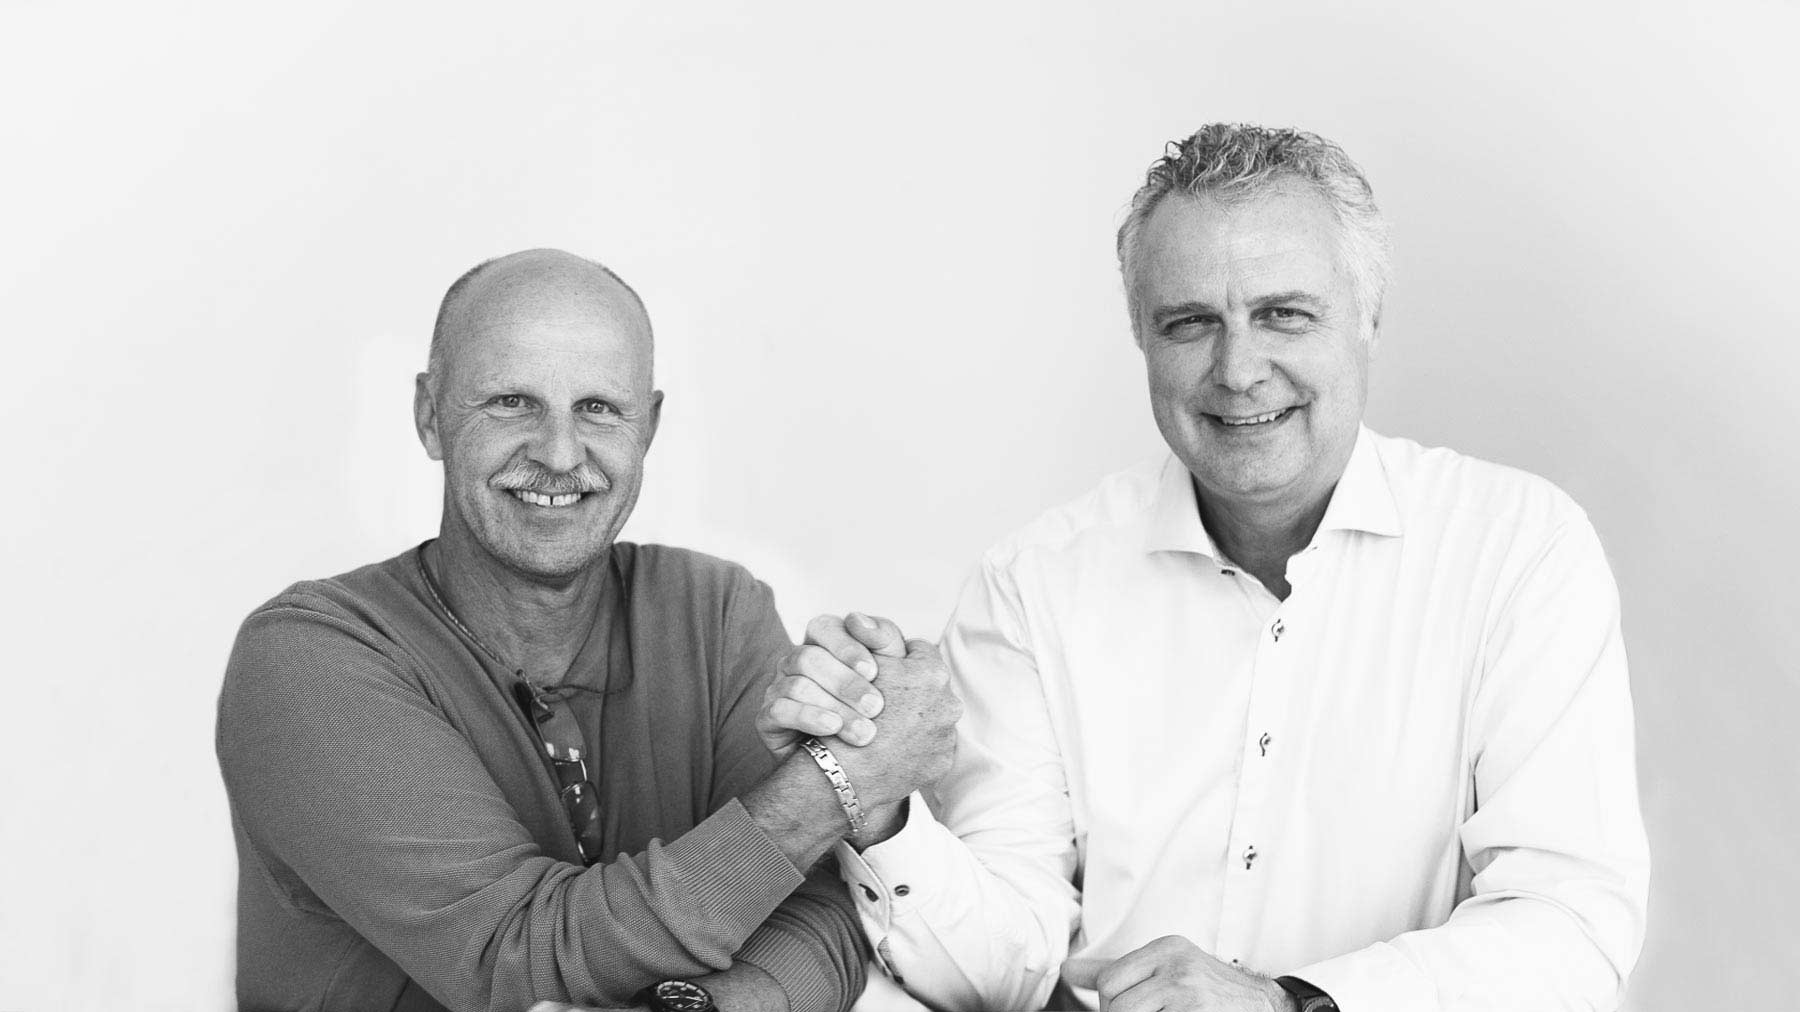 leAD Sportsaccelerator: Horst and Klaus Bente